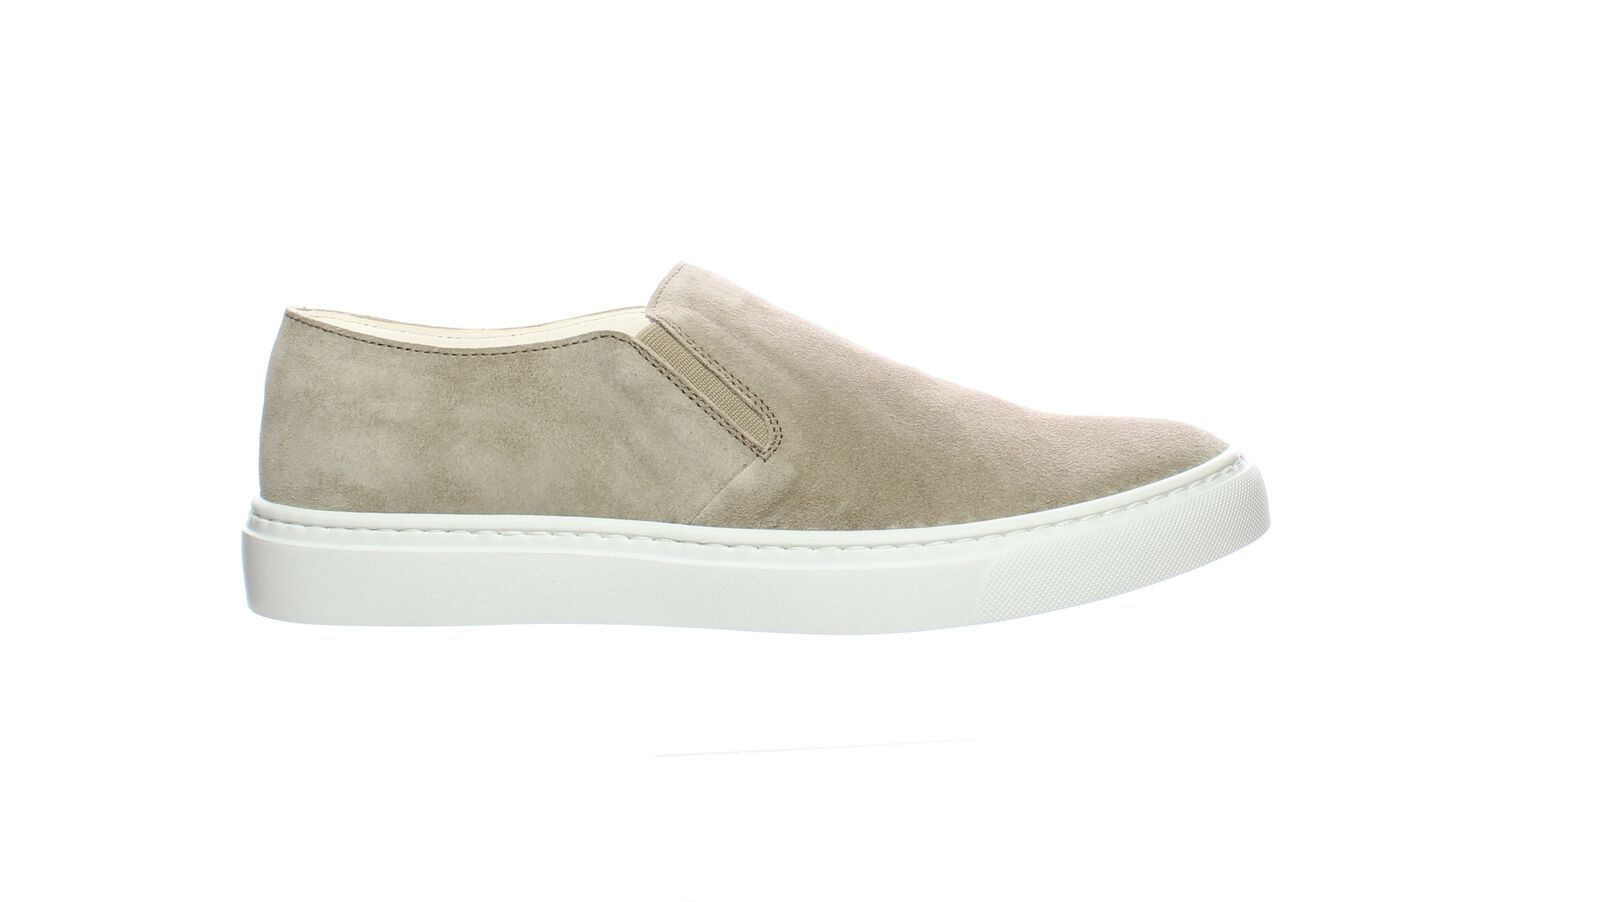 To Boot New York Womens Alessia Sand Suede Casual Flats Size 9.5